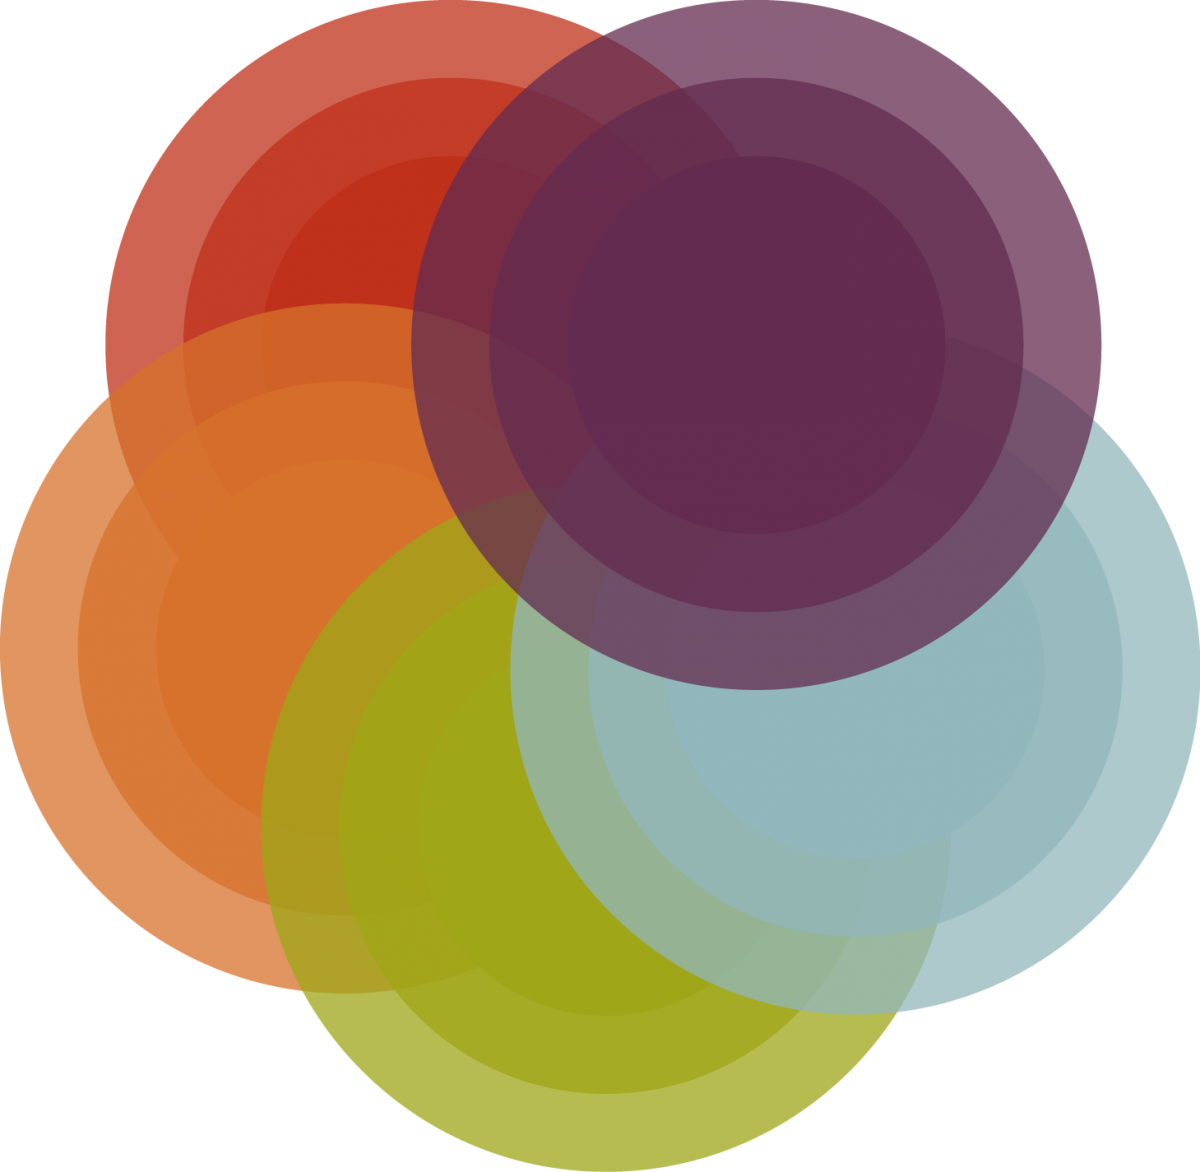 colorful circular graphic image